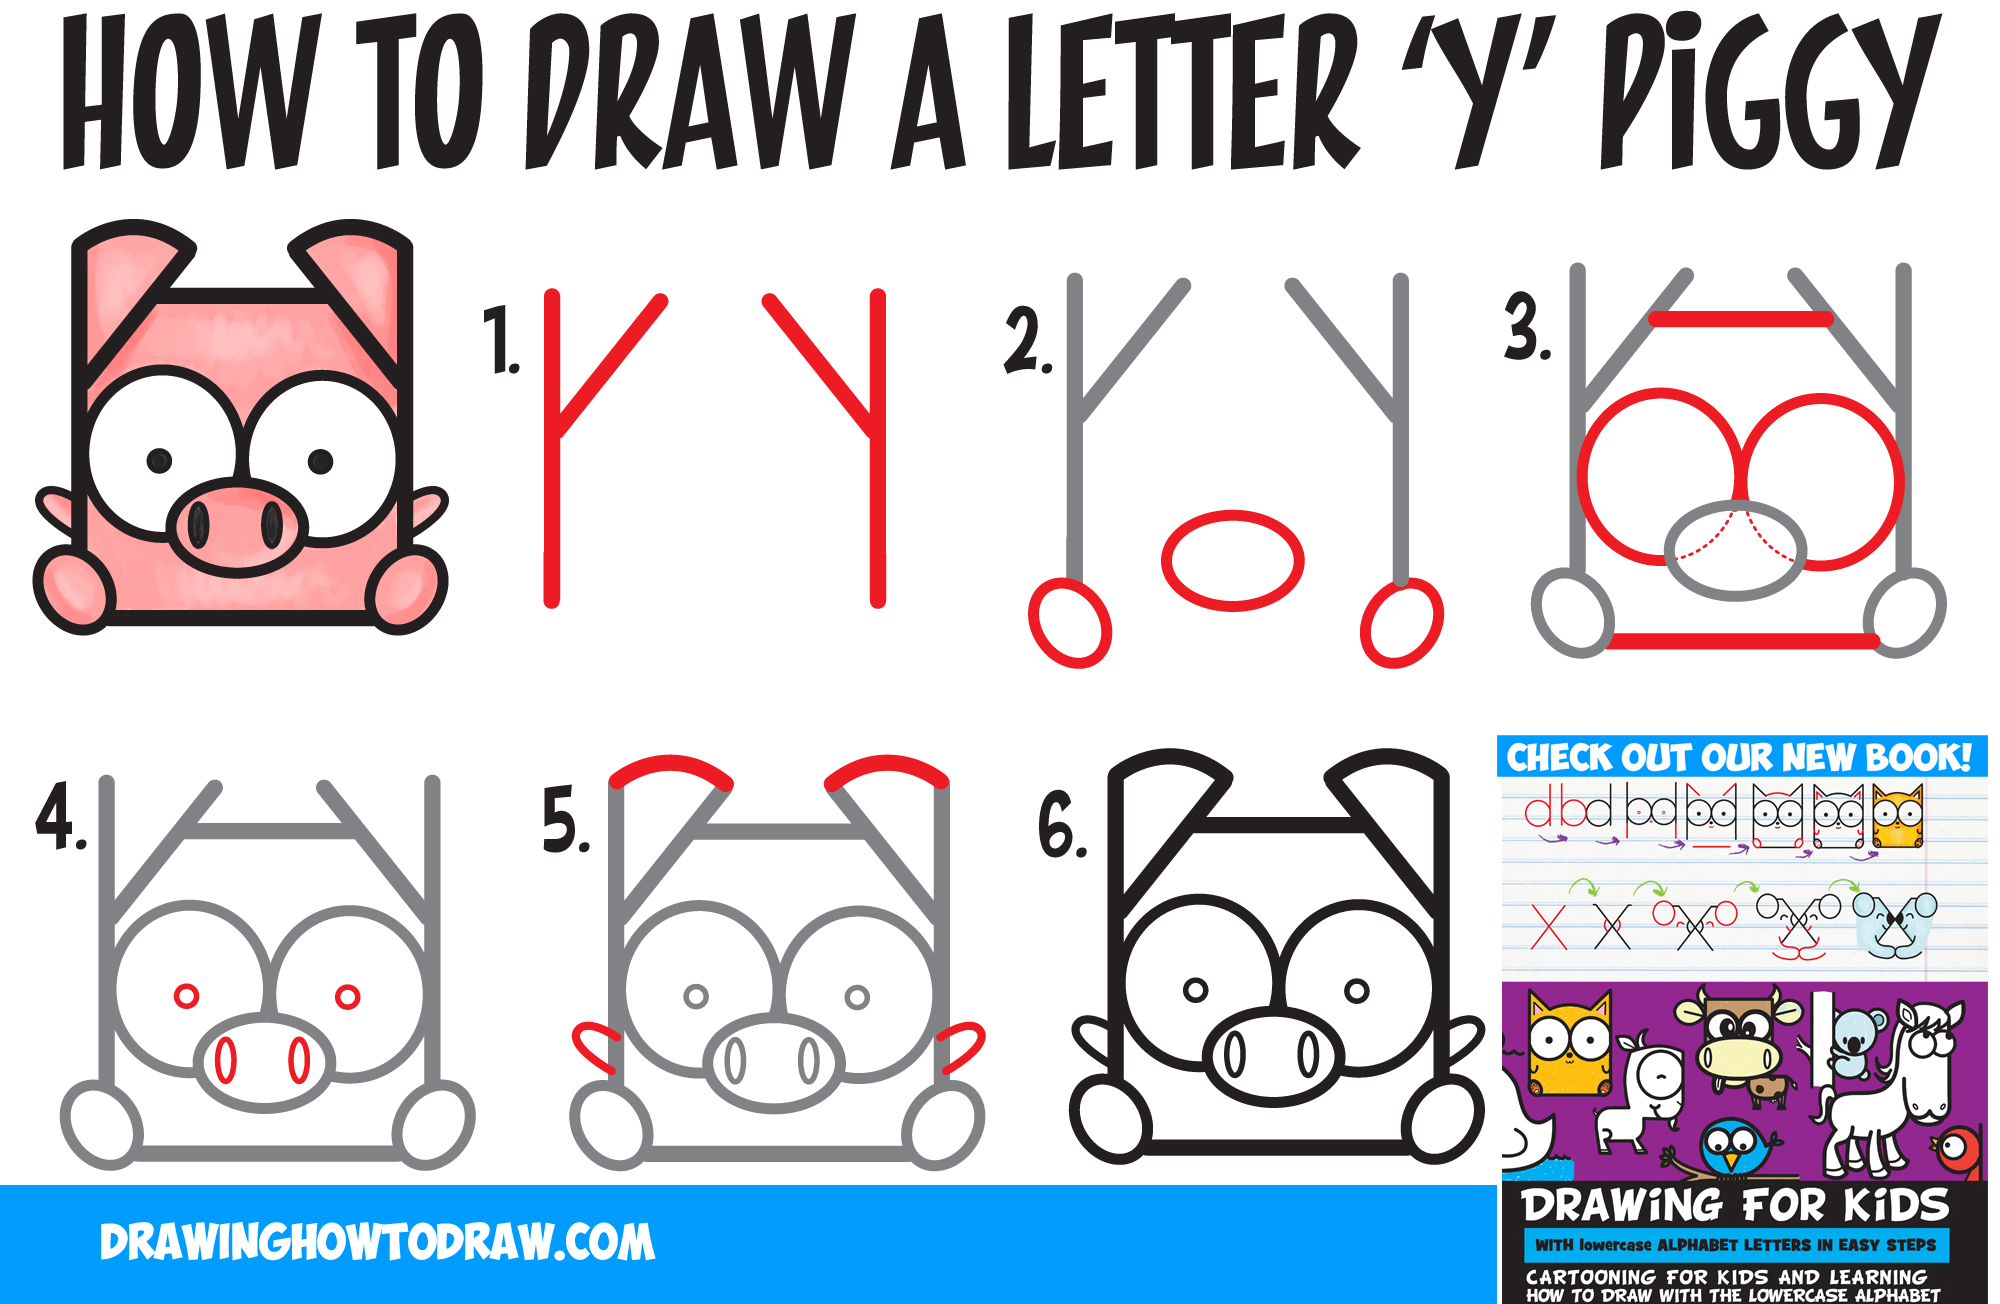 How to Draw a Cute Kawaii Cartoon Pig from Letter 'Y' Shapes - Easy Step by Step Drawing Tutorial for Kids